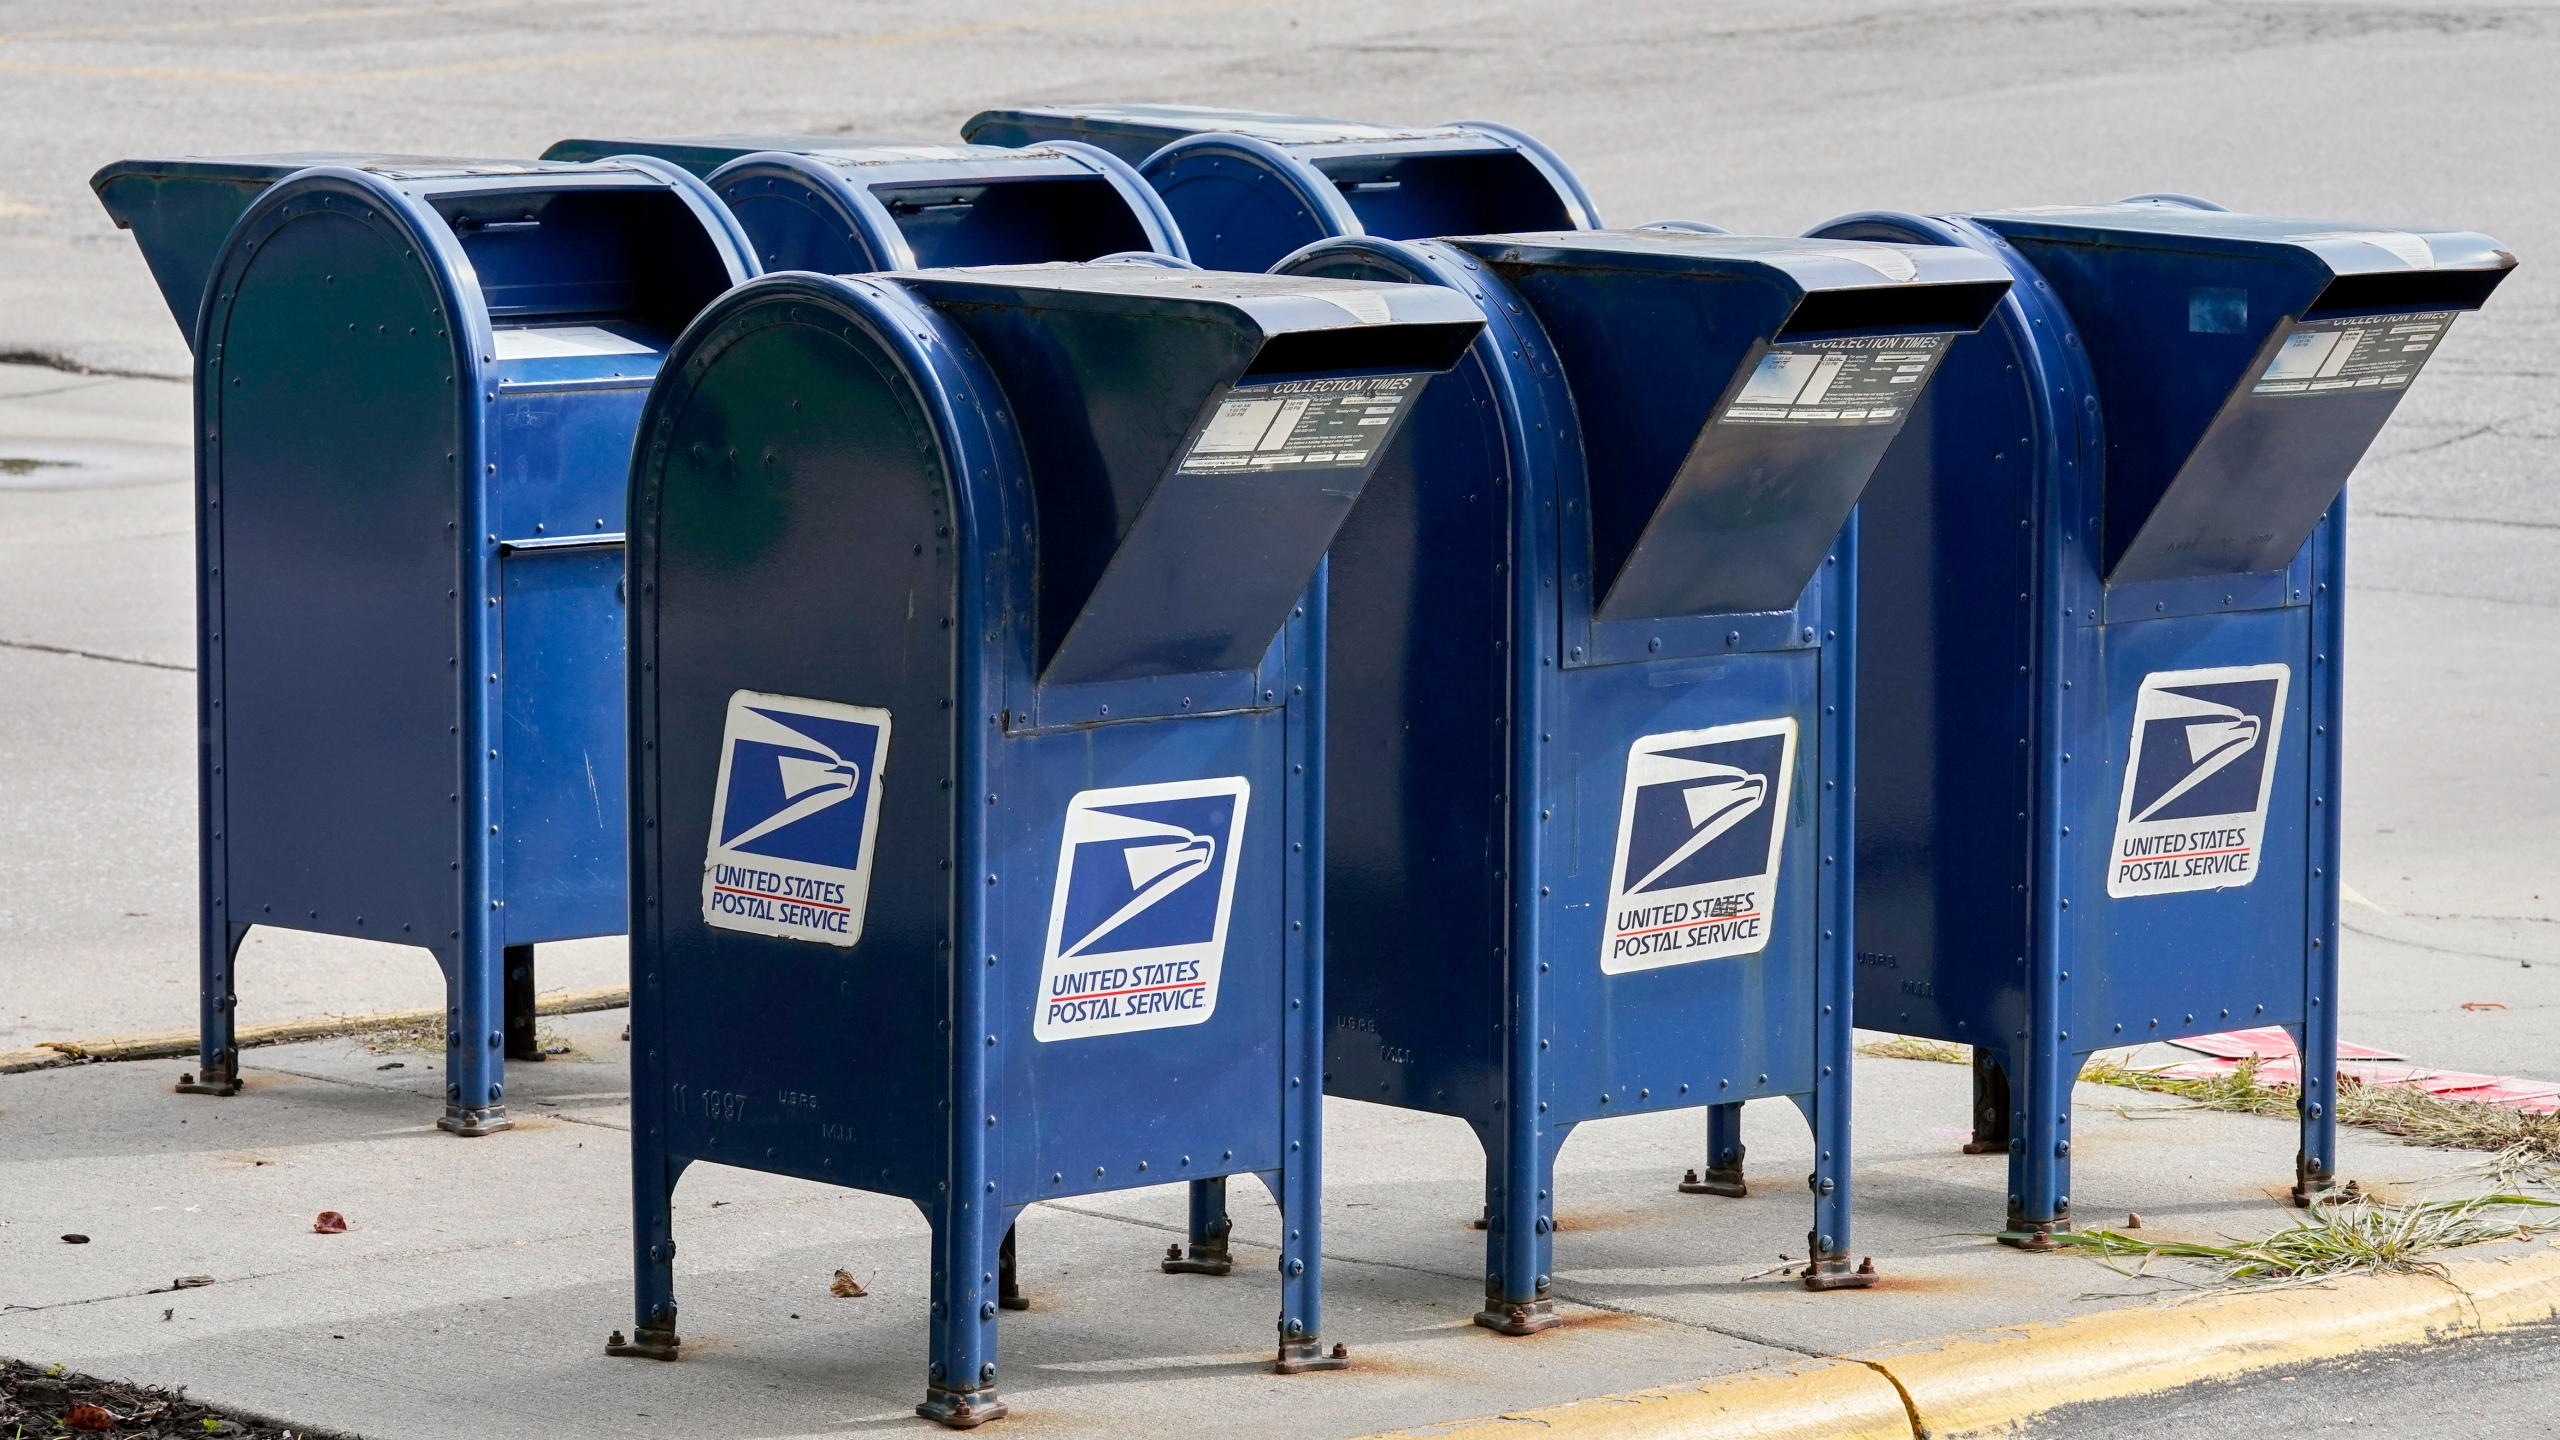 Mailboxes in Omaha, Neb., Tuesday, Aug. 18, 2020.(AP Photo/Nati Harnik)